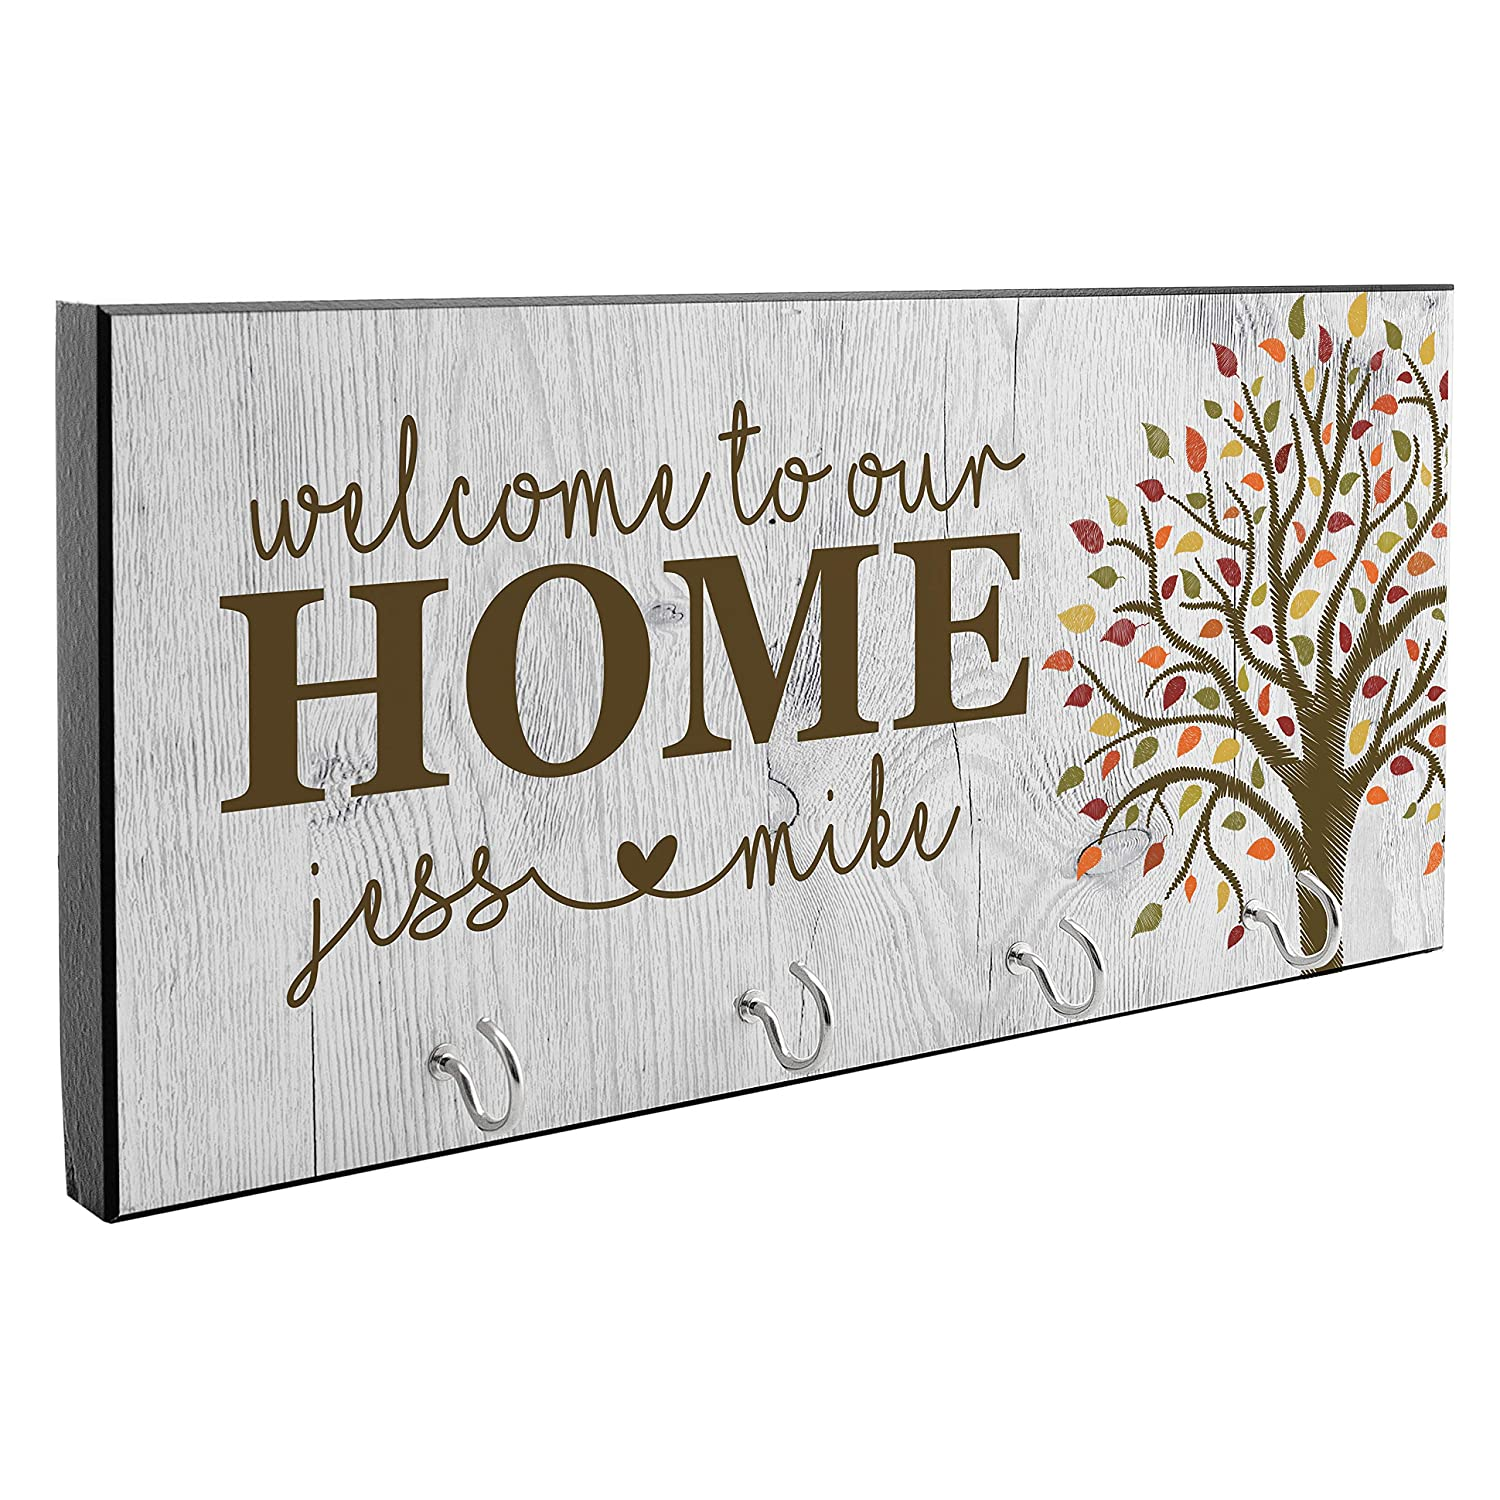 Customized Key Hanger Housewarming Gifts for Newlyweds Wedding Gift for Couples State Design with Leaves D9 Personalized Key Holder for Wall